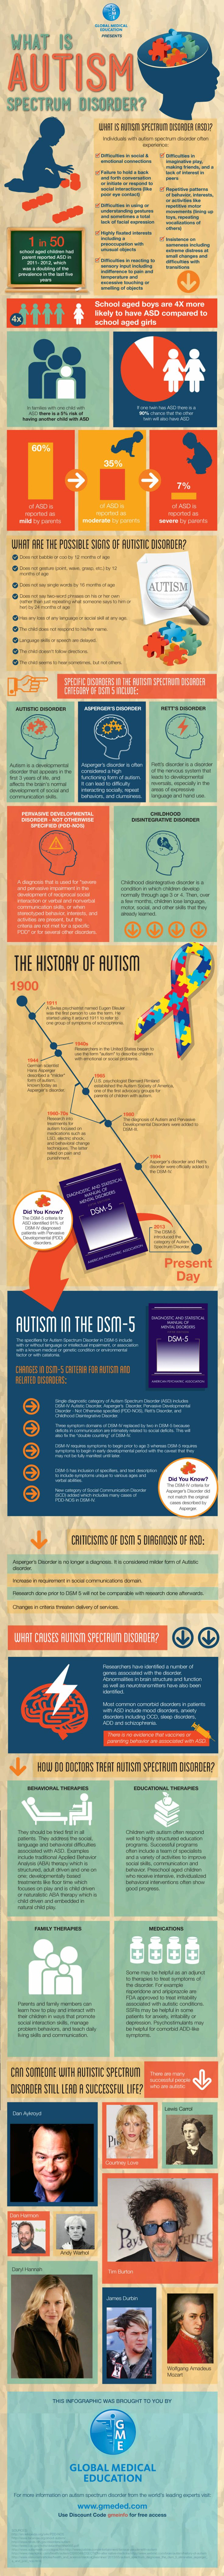 What Is Autism Just what is Autism? Many questions surround this disorder. For example what is the relationship of vaccines and Autism? What are the best treatments for Autism including types of therapies for Autism? Can you cure Autism? Global Medical Education has put together an infographic on the subject of Autism that will provide answers to these and many other questions.